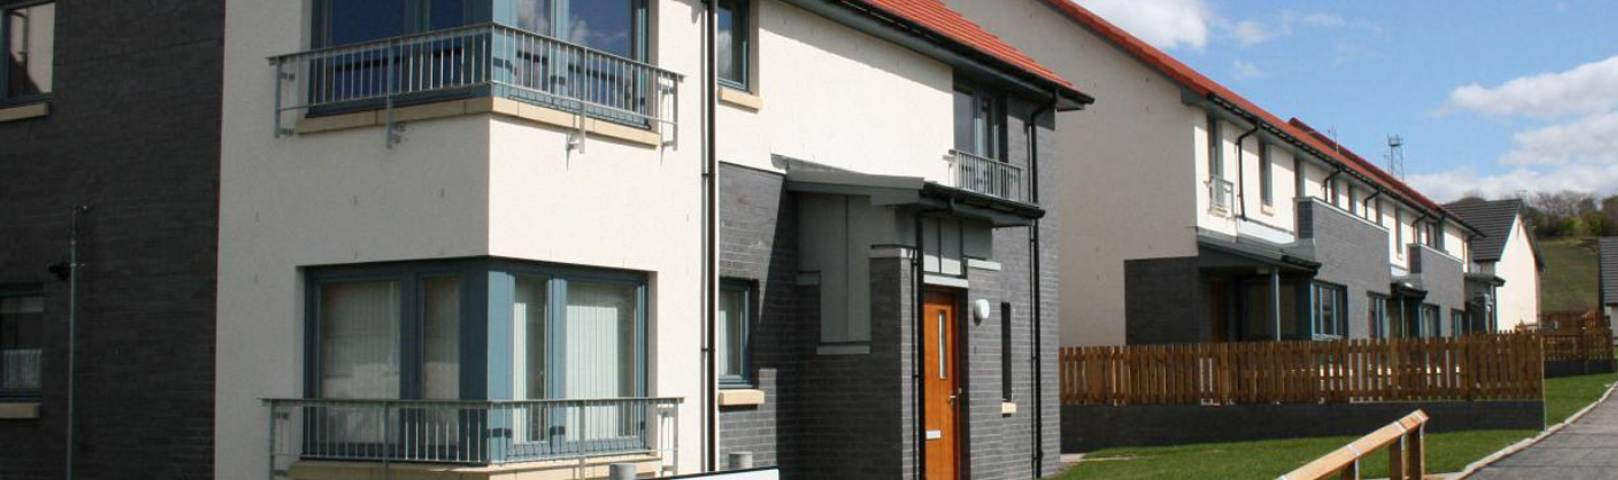 Melville Housing is Midlothian's largest Registered Social Landlord